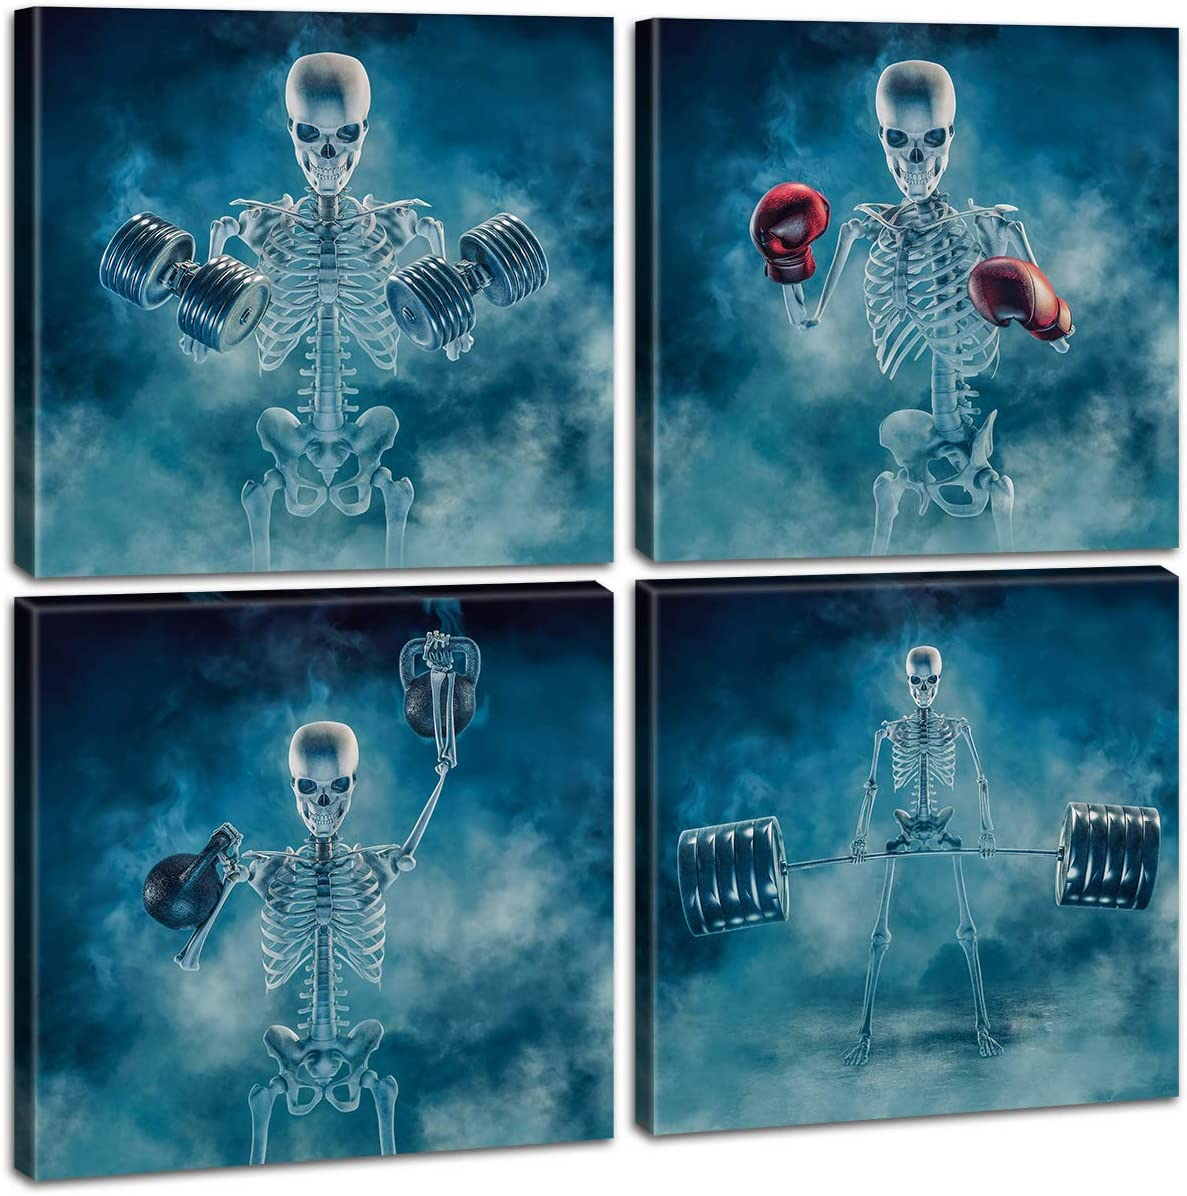 JiazuGo - Human Skull Wall Art Blue Horror Pictures Red Boxing Gloves Dumbbell Movement Gothic Painting Prints on Canvas Living Room Kitchen Home Decor 4 Panels Stretched and Framed Ready to Hang